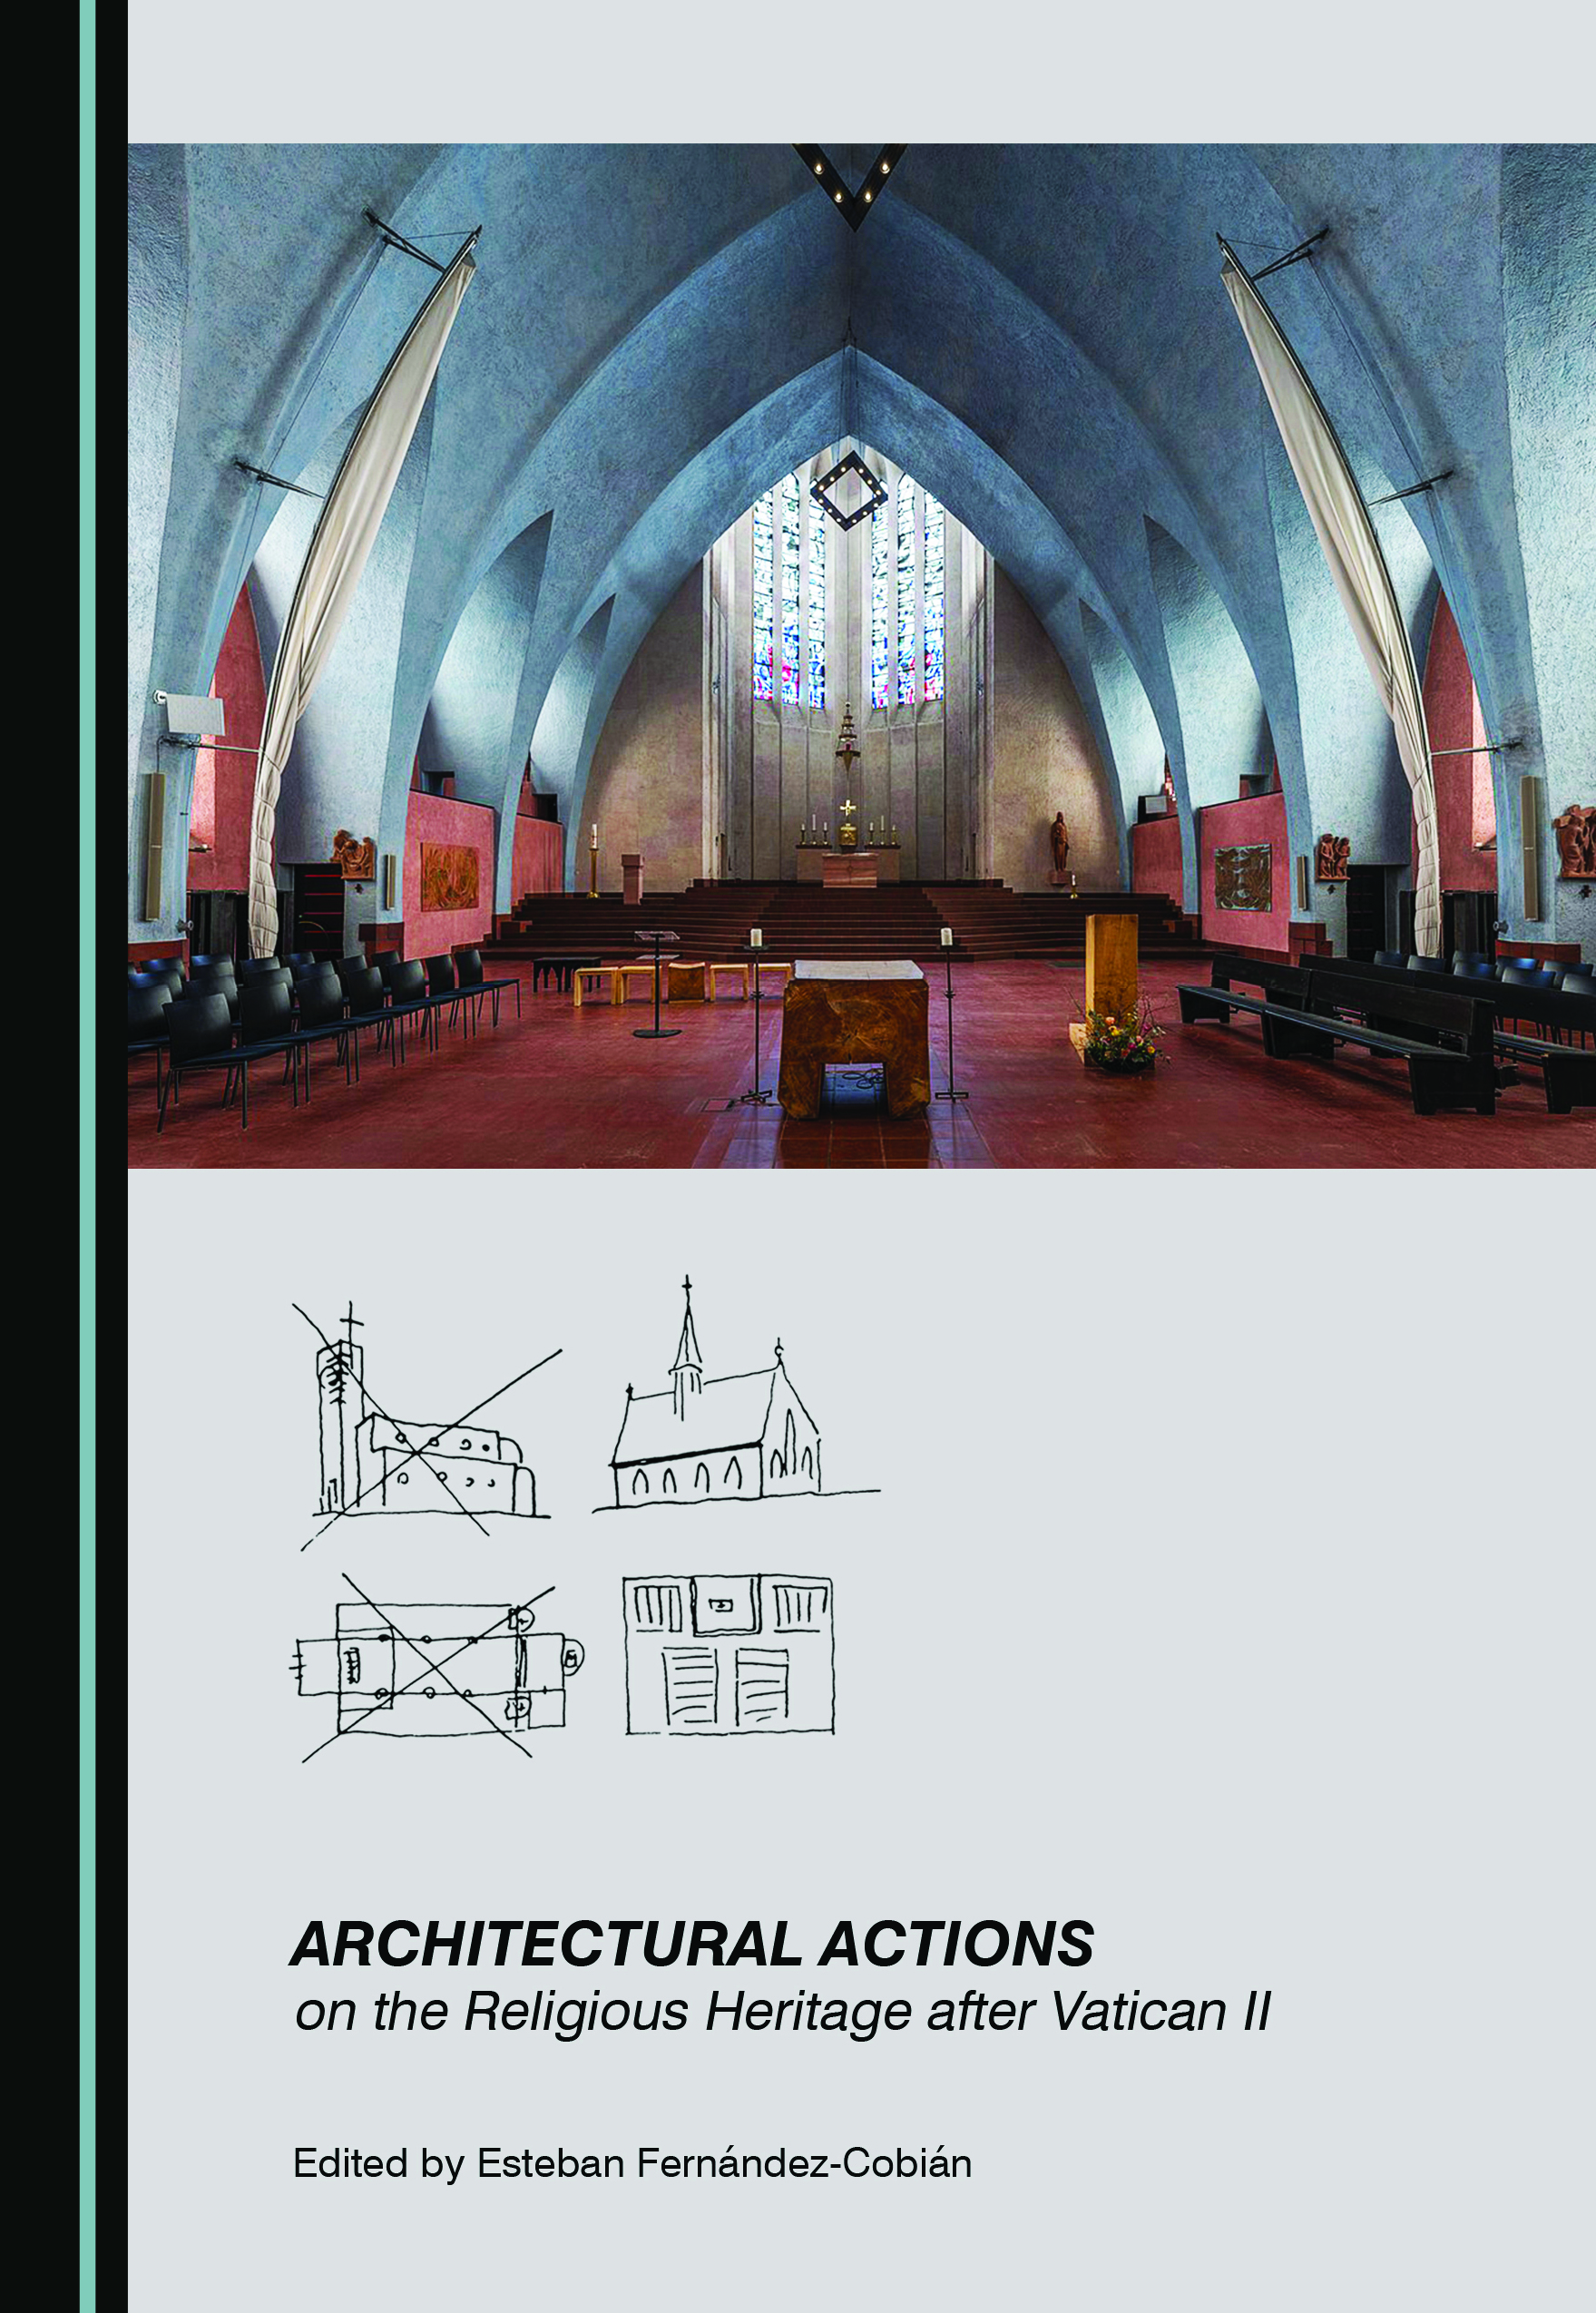 Architectural Actions on the Religious Heritage after Vatican II